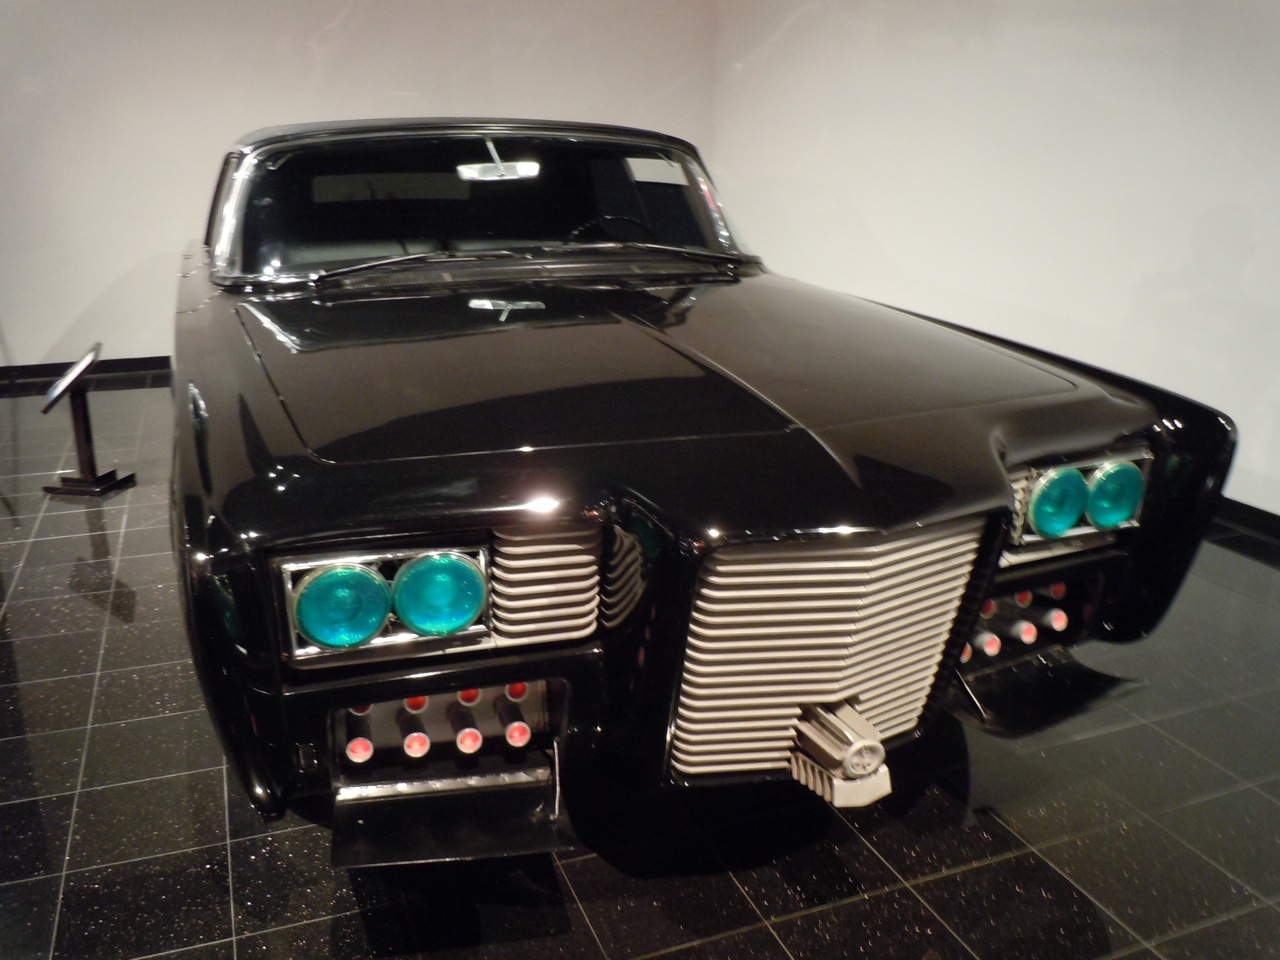 Hollywood Movie Costumes And Props: The Green Hornet's